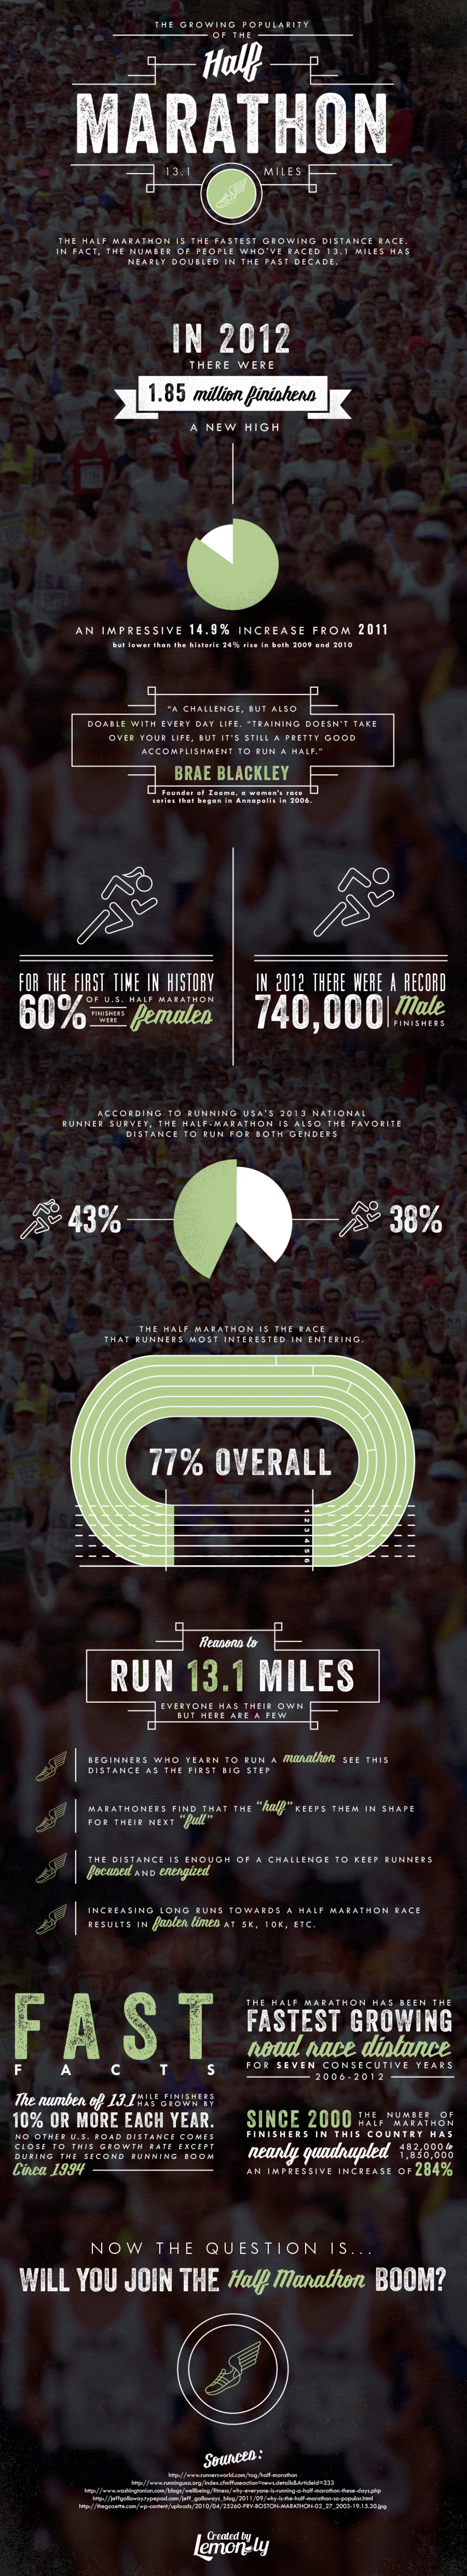 The Popularity of 13.1 Miles: A Half Marathon Statistics Infographic